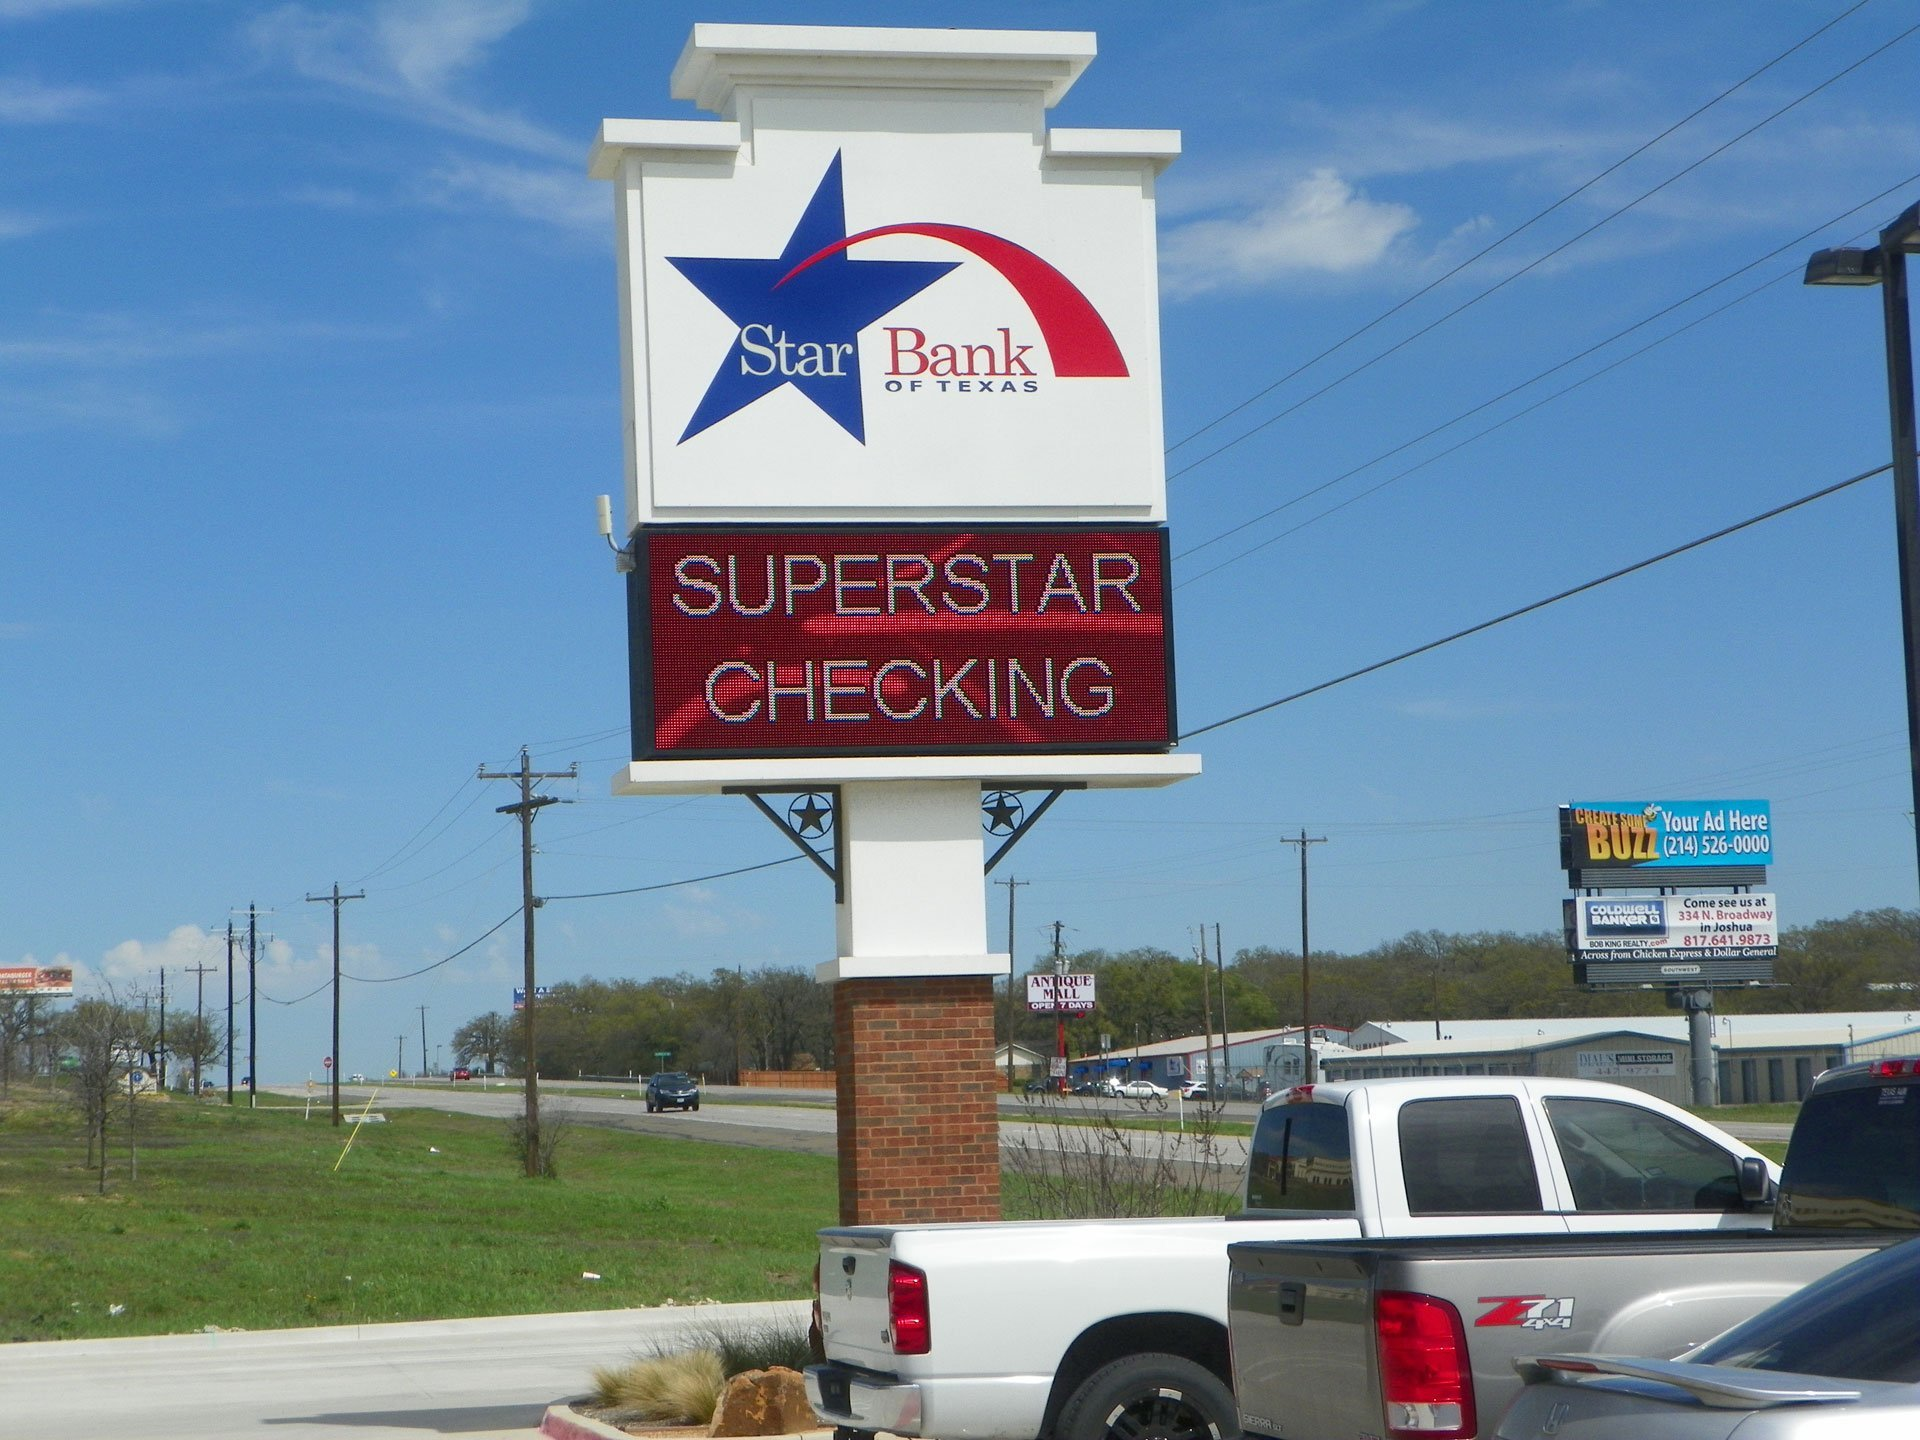 Star bank sign